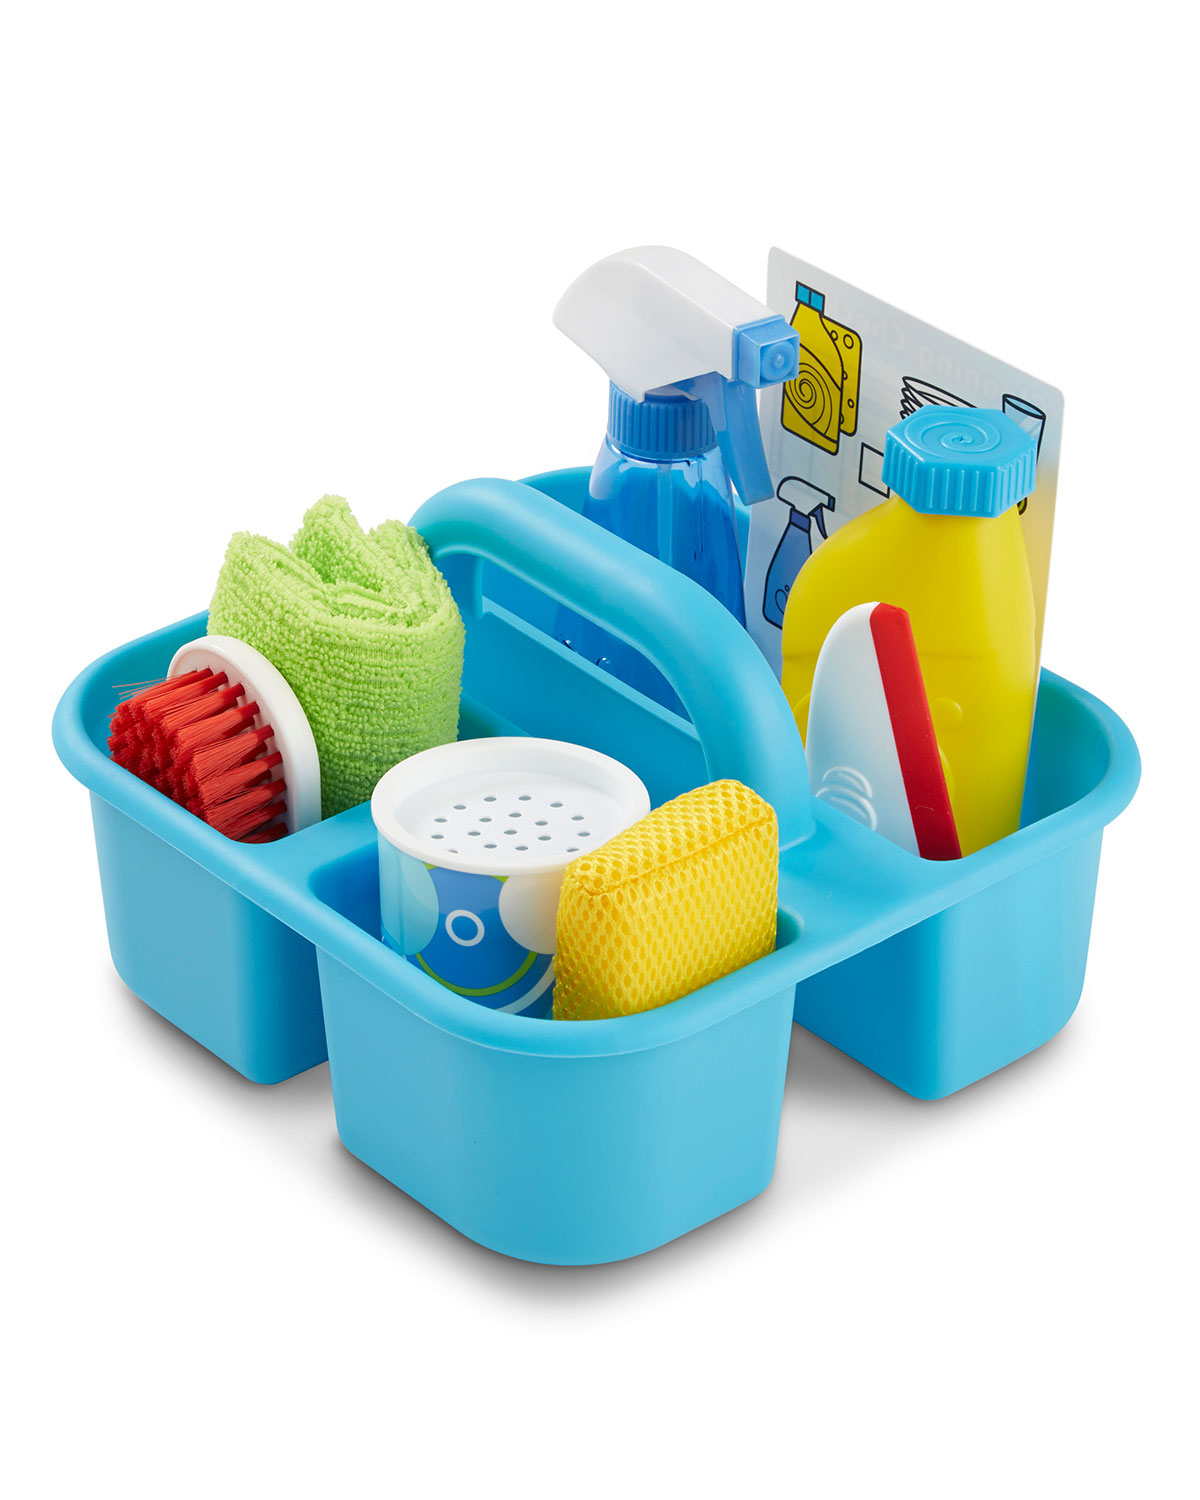 Let's Play House Spray, Squirt & Squeegee Play Set